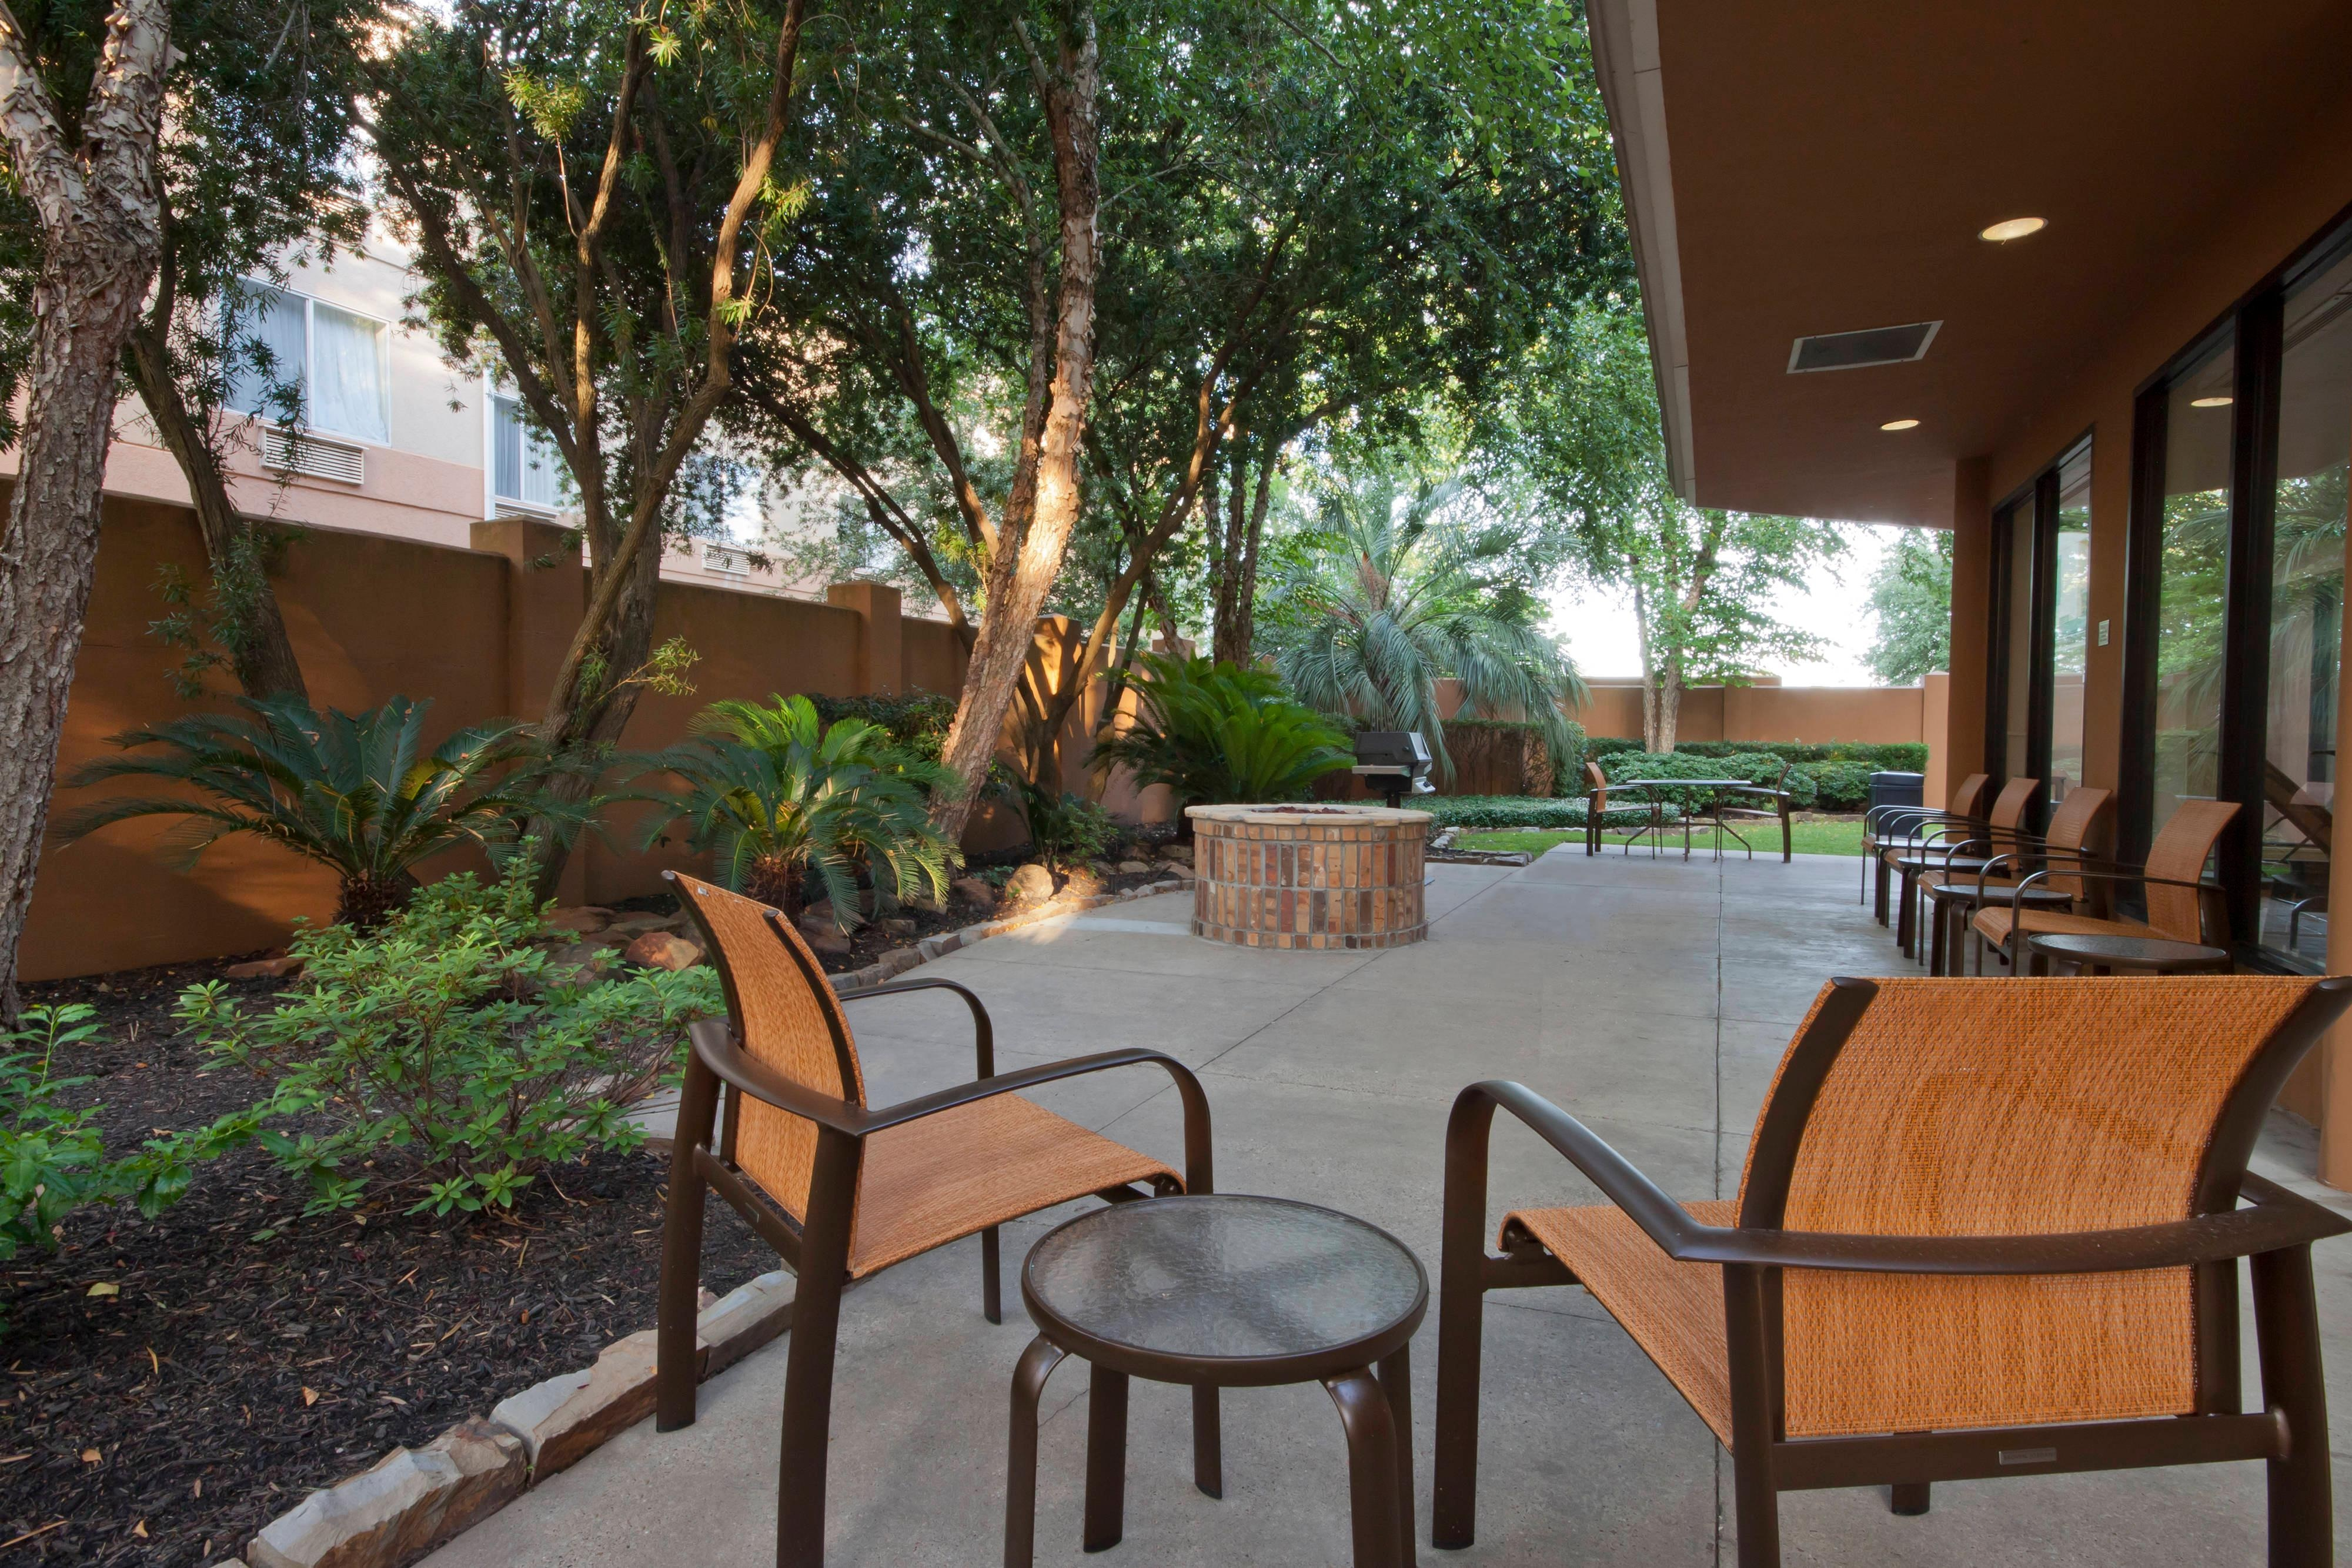 Beaumont Texas Hotel Outdoor Courtyard